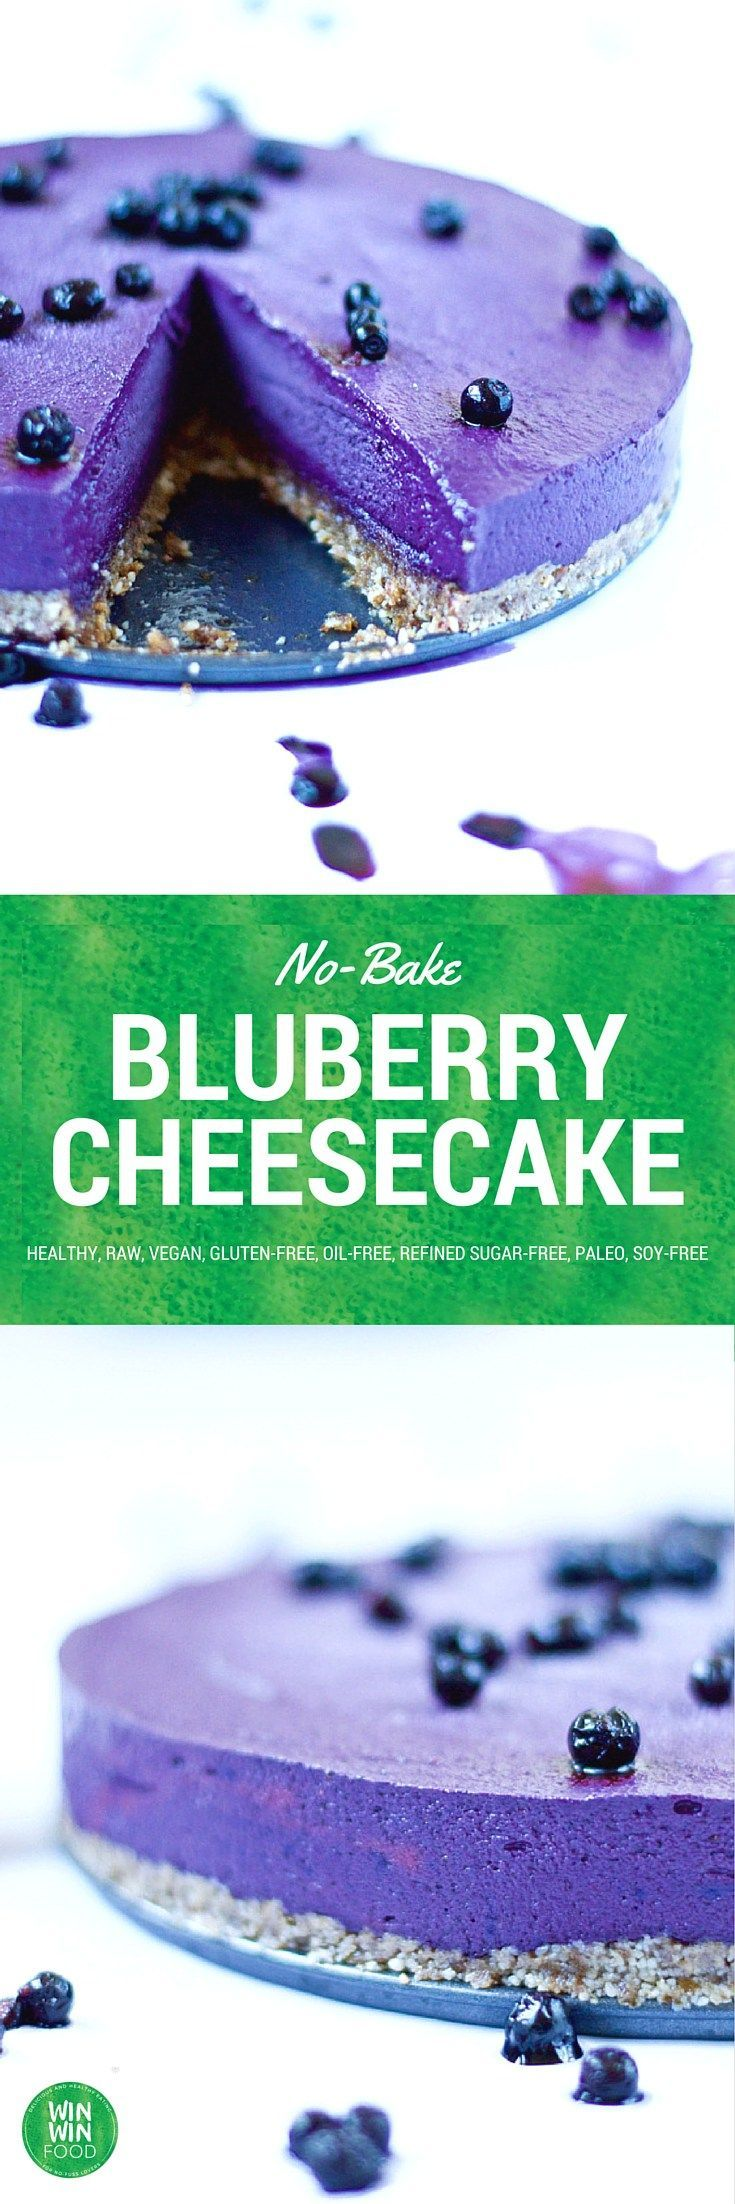 No-Bake Blueberry Cheesecake                                                                                                                                                                                 Mehr